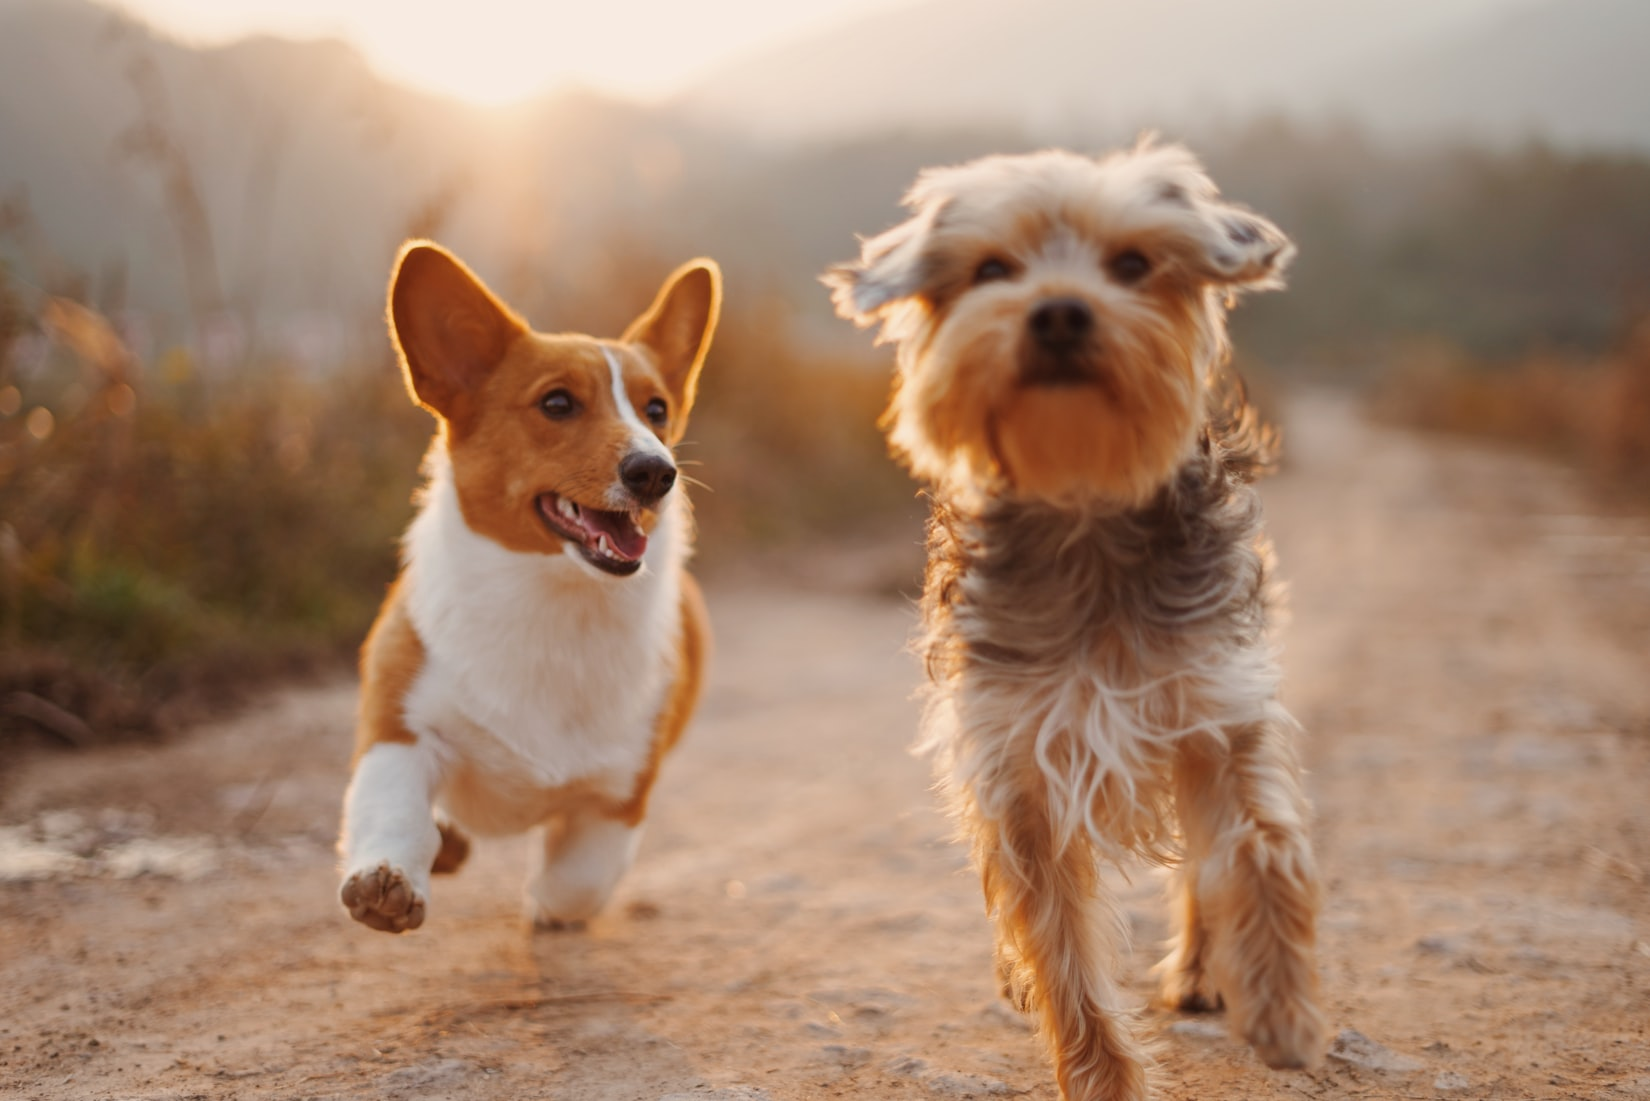 When Were Dogs Domesticated?